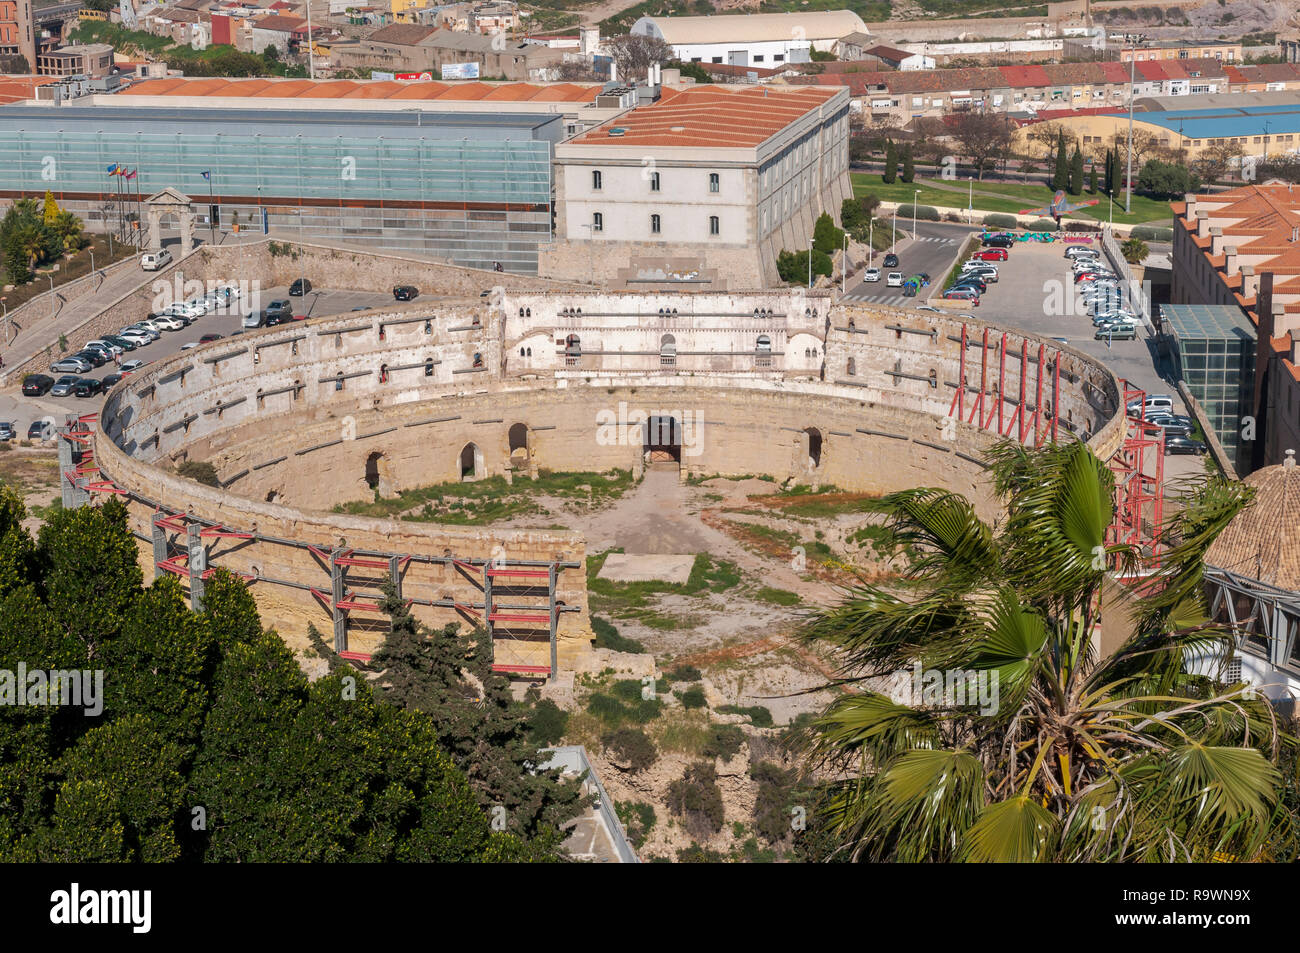 Views of the old bullring of Cartagena, in the province of Murcia, Spain. It was built in 1853. Stock Photo